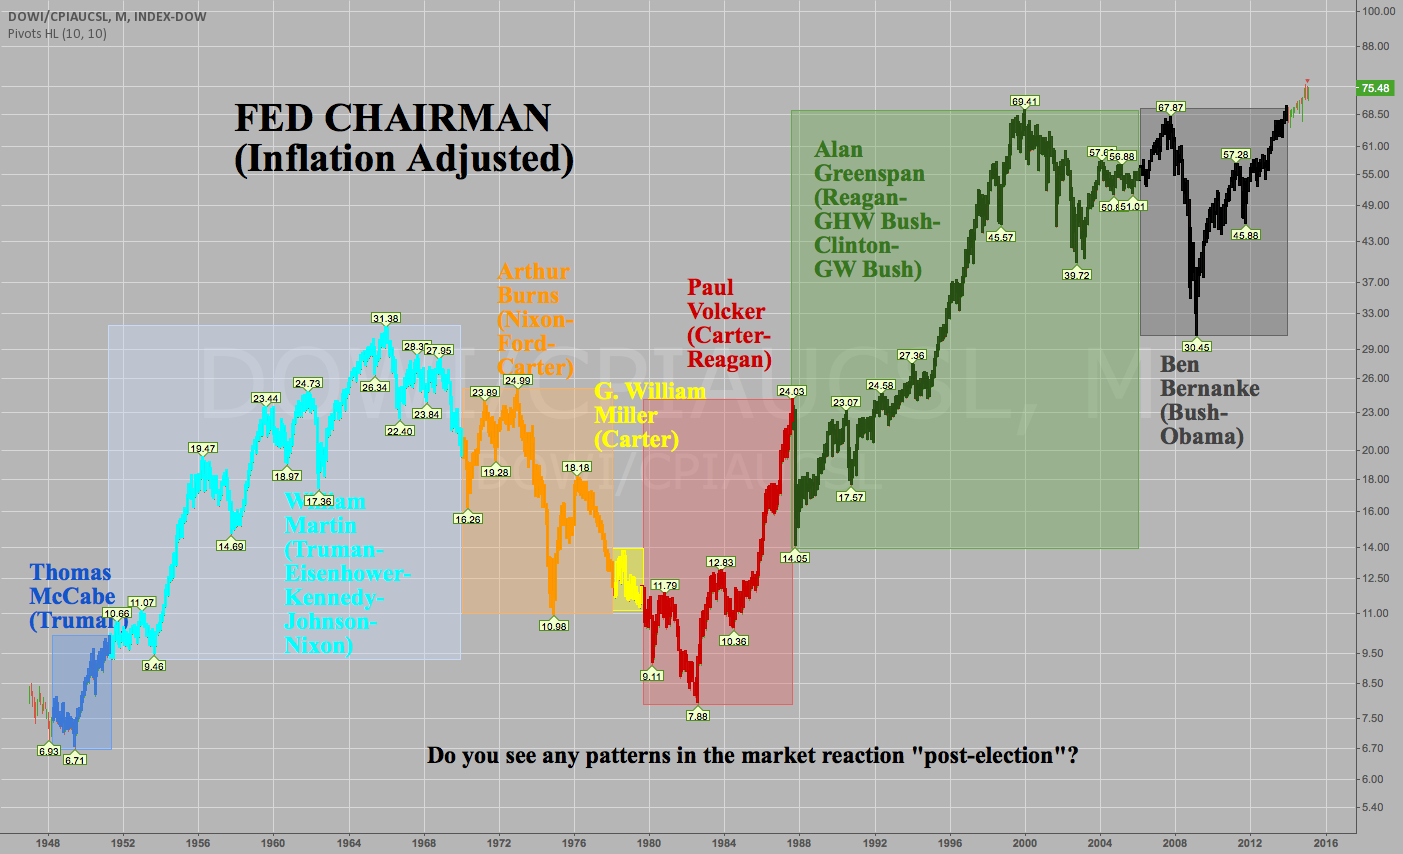 Fed Chairman Graph -Inflation Adjusted 1948-Present